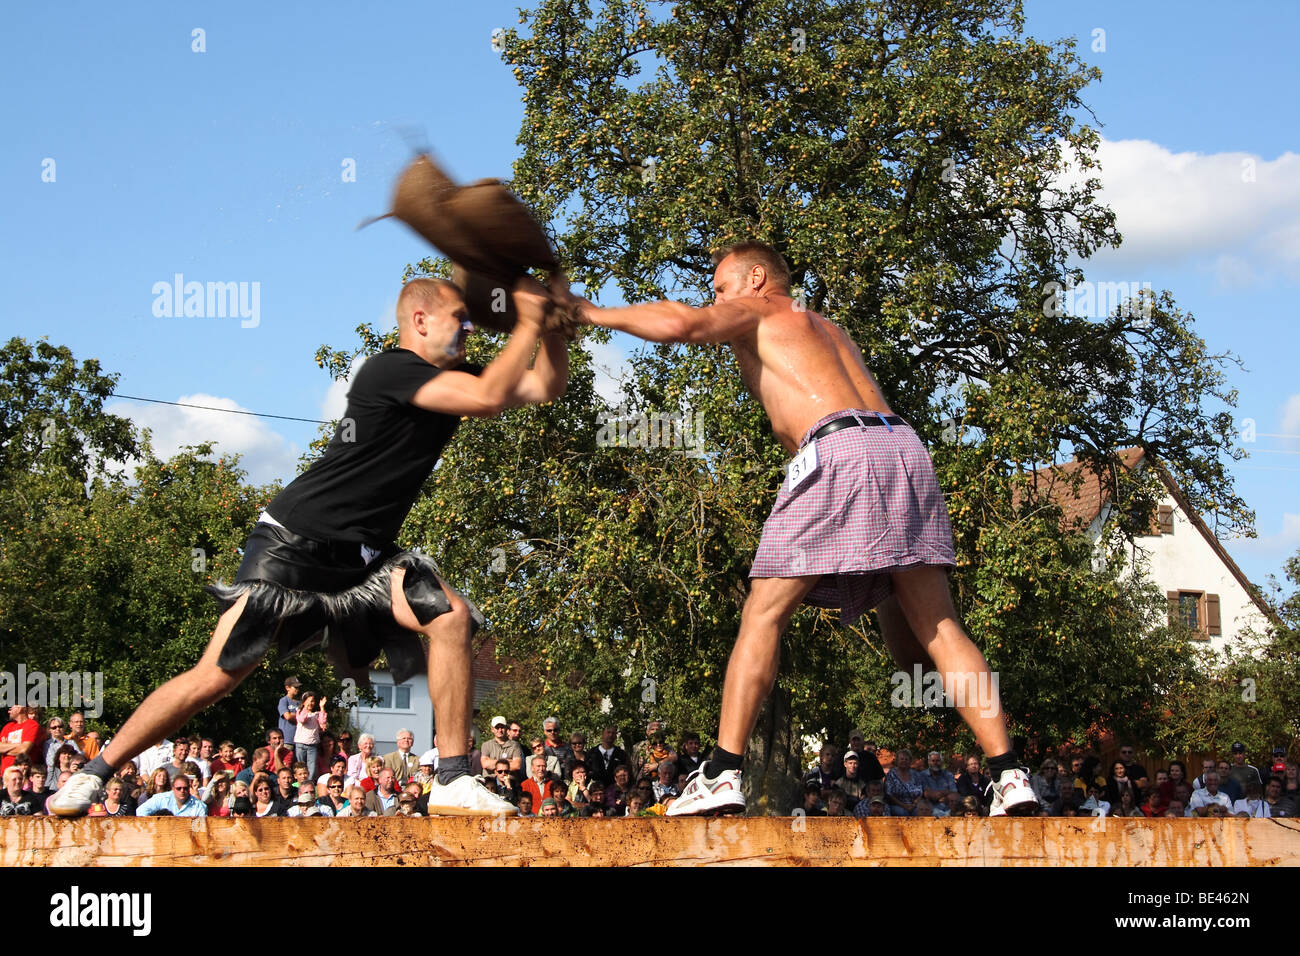 Discipline straw sack competition, straw sacks are used to push the the opponent off balance, so that he falls into - Stock Image